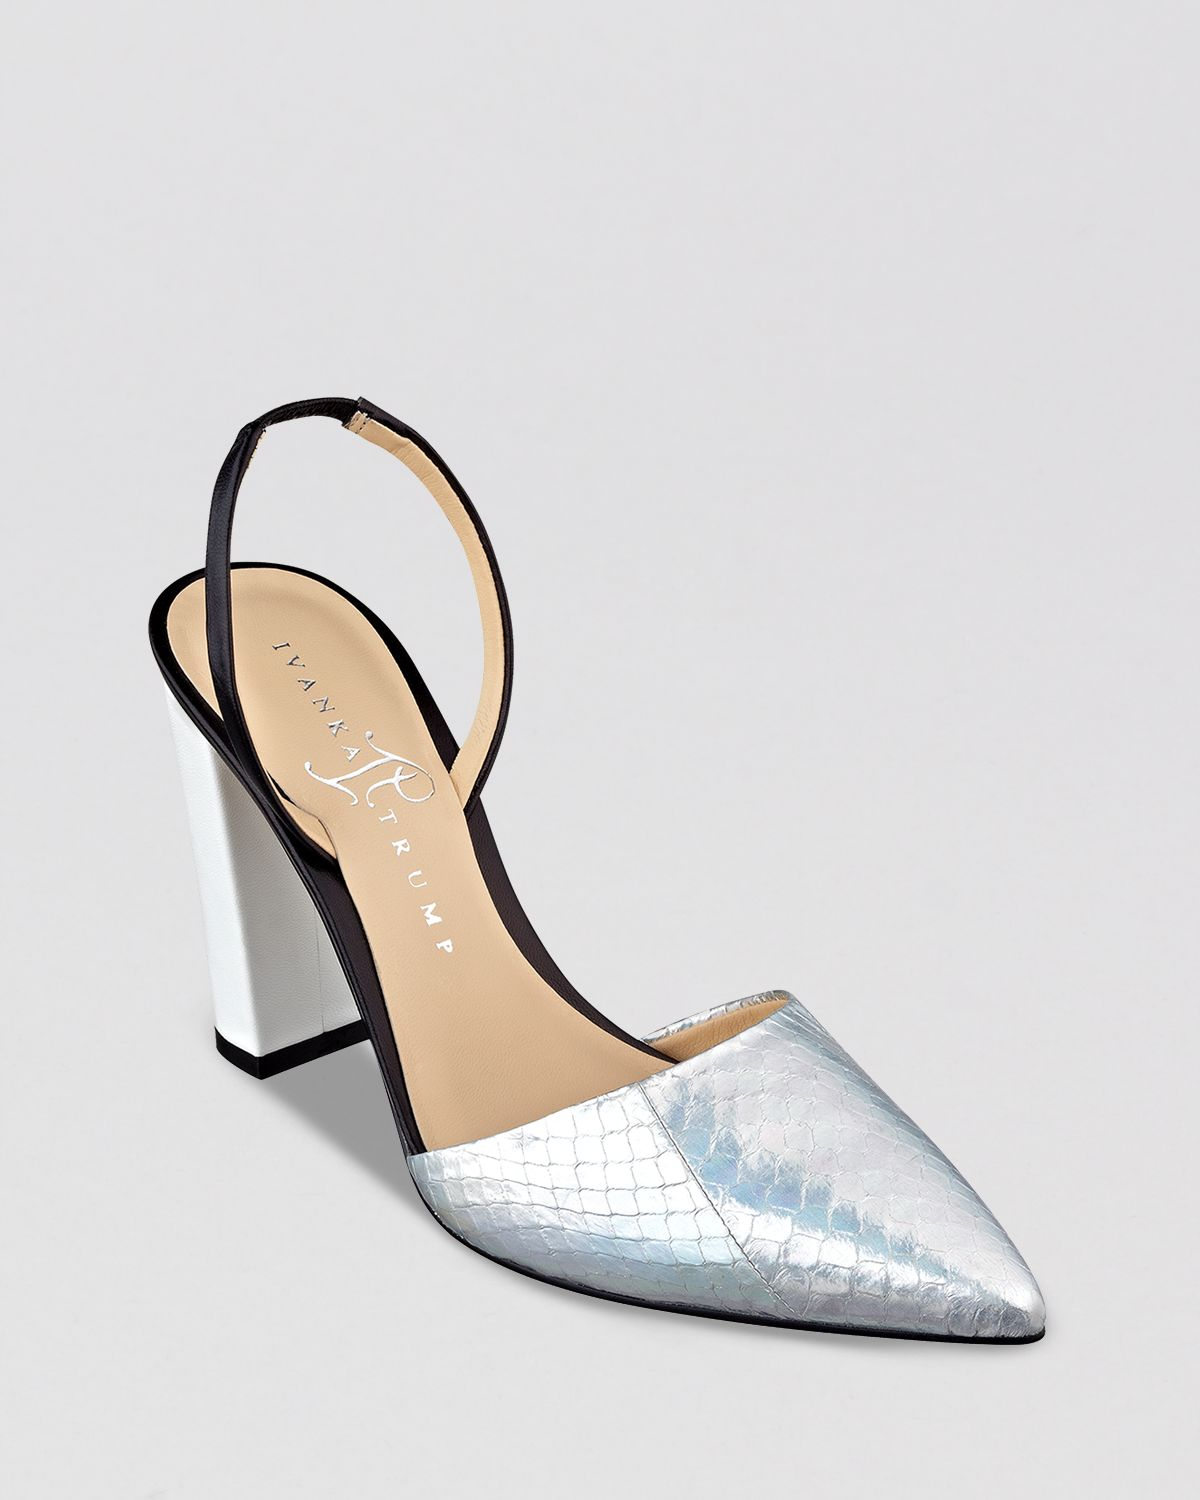 68ab9a9c4381 Lyst - Ivanka Trump Pointed Toe Pumps Cami Slingback High Heel in ...